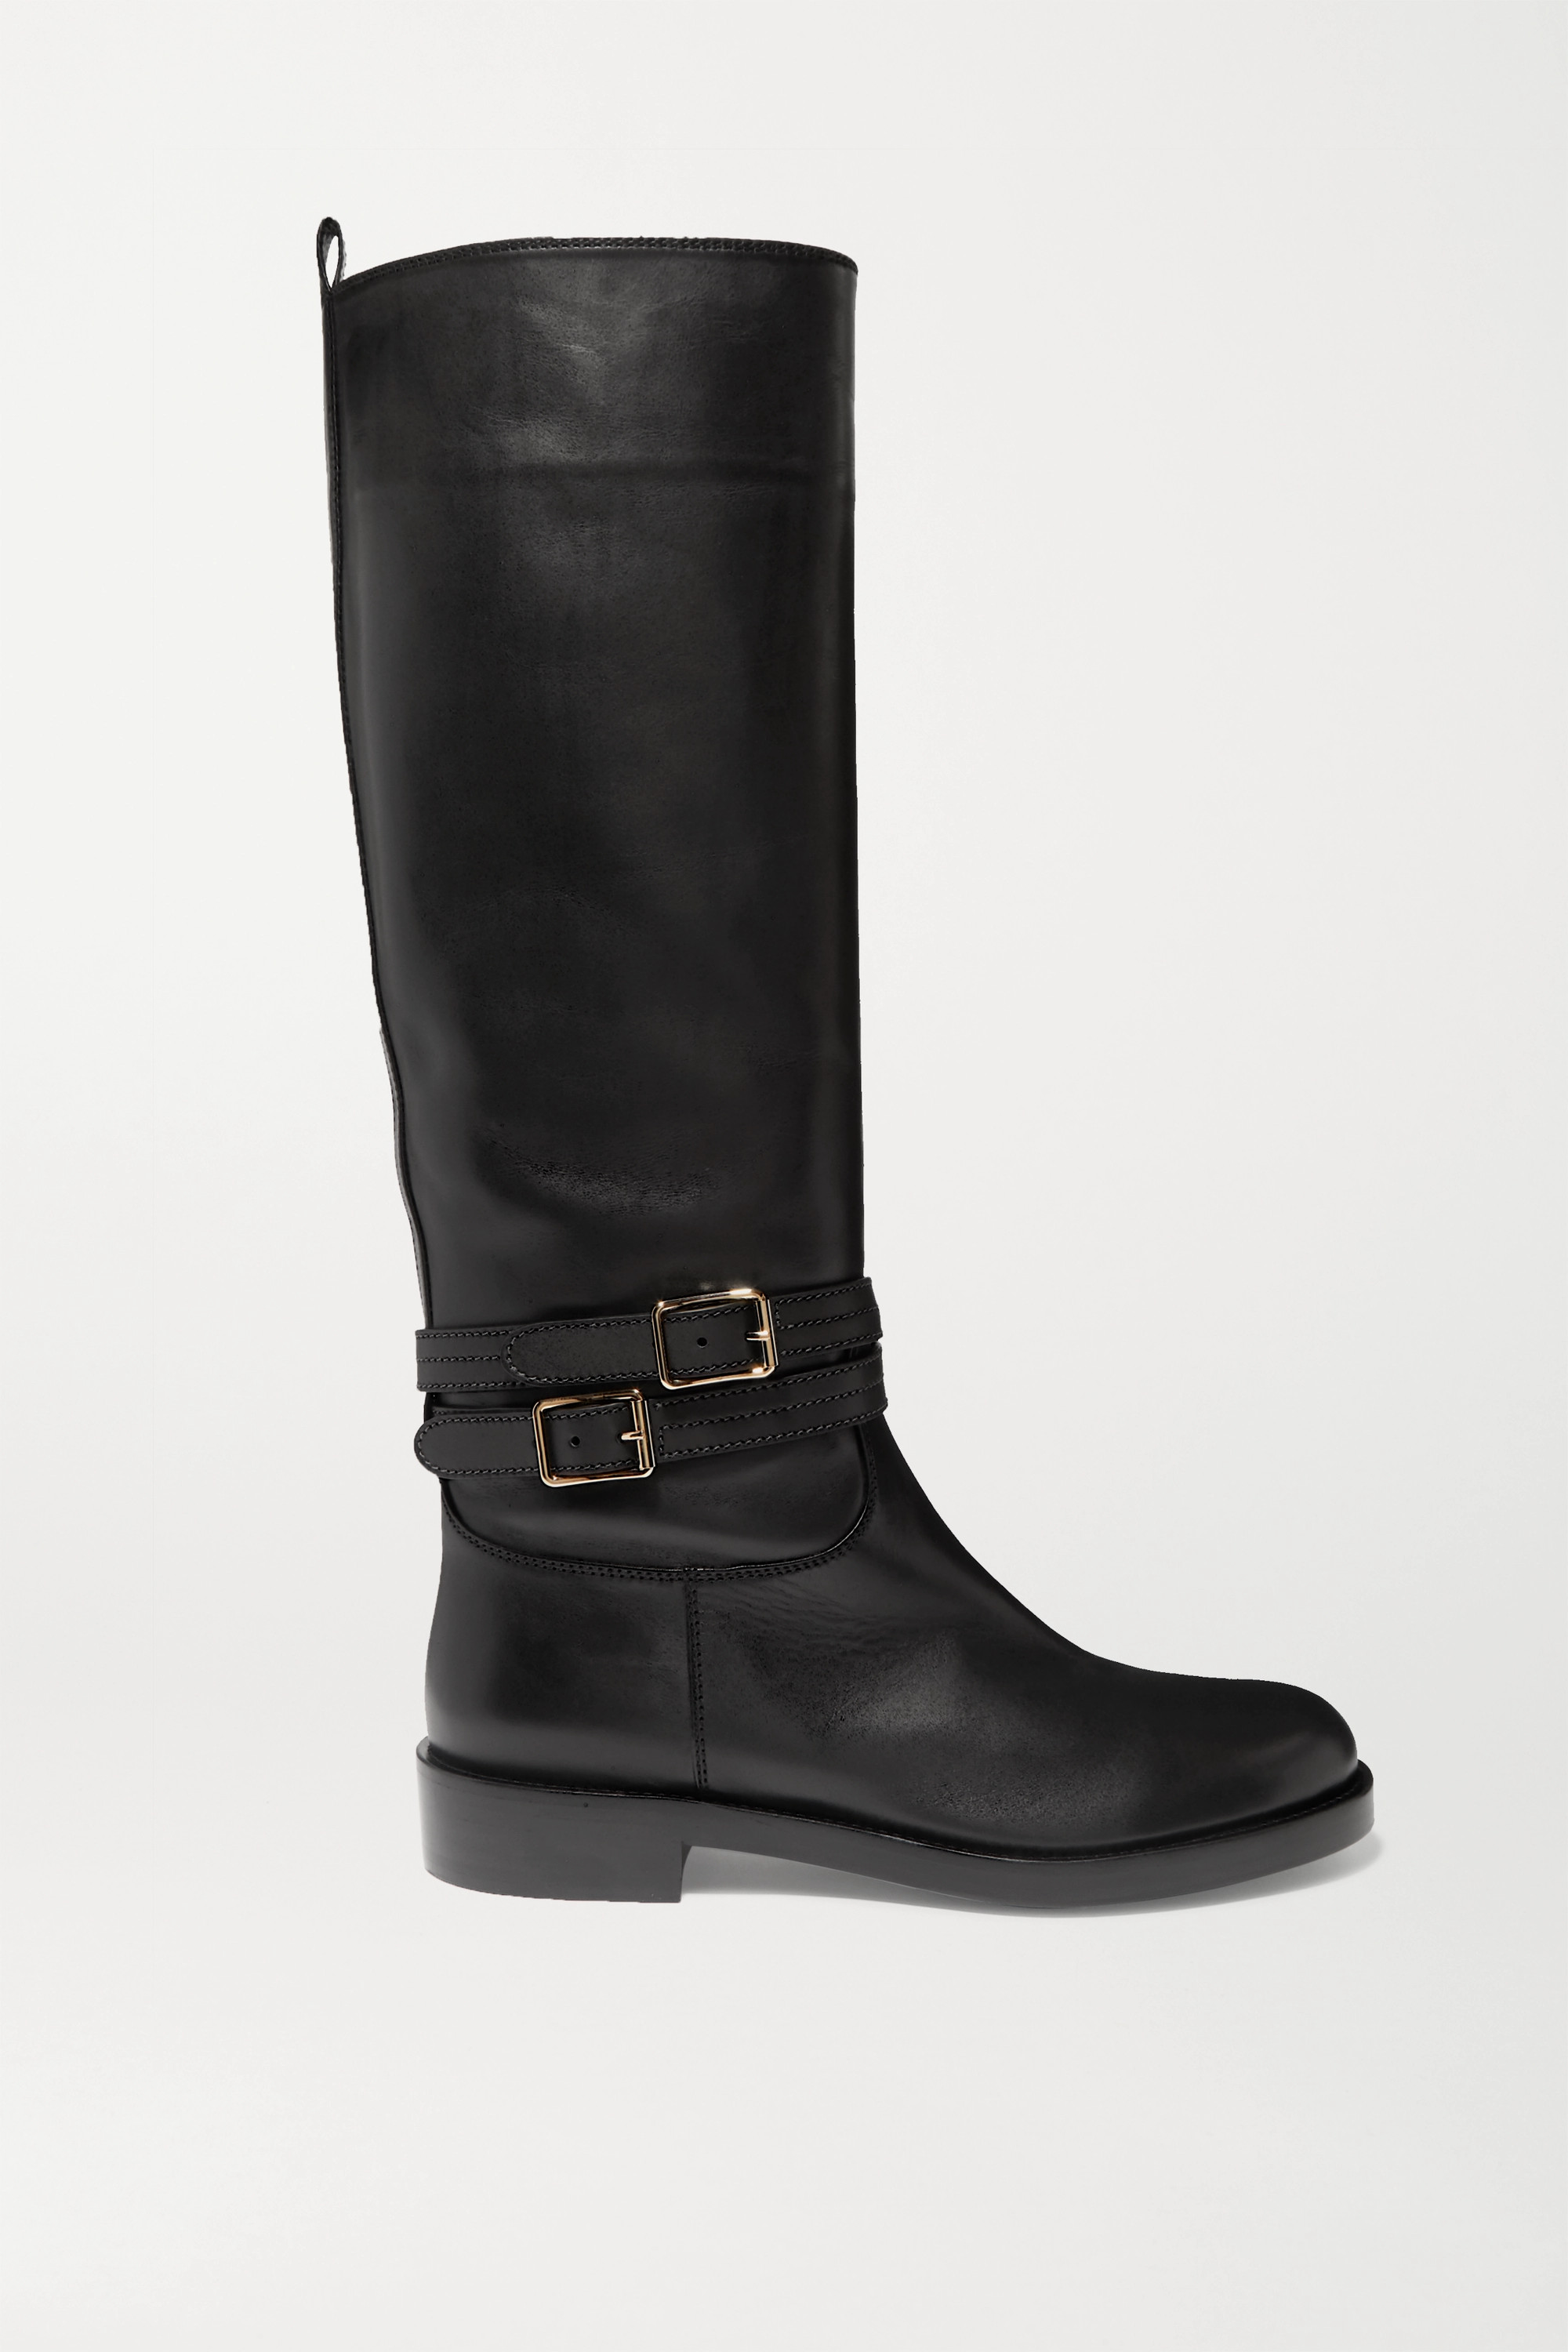 Gianvito Rossi Buckled leather knee boots